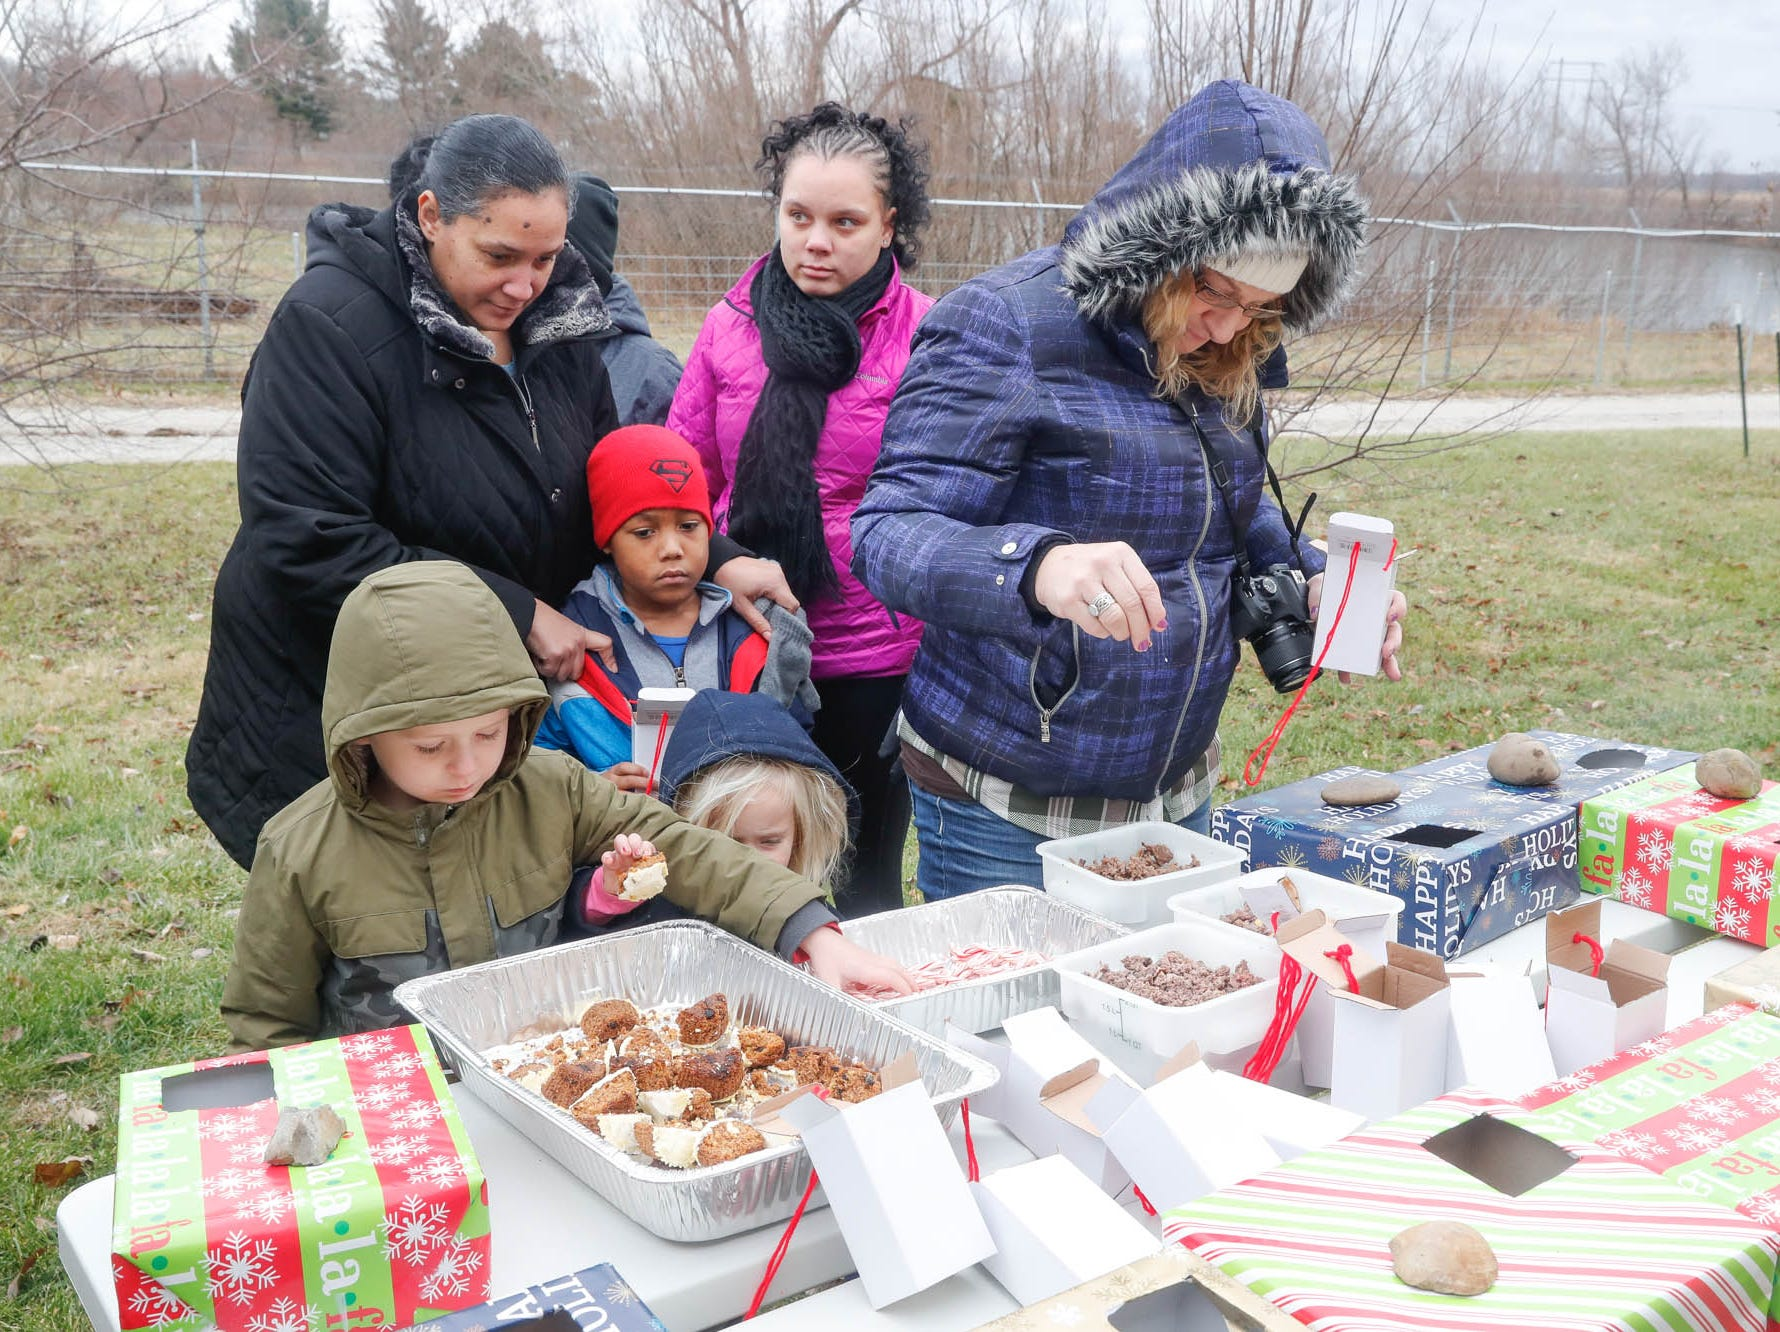 Guests fill gift boxes with Christmas treats for the wolves during Santa's visit to Wolf Park in Battle Ground Indiana on Saturday, Dec. 15, 2018.